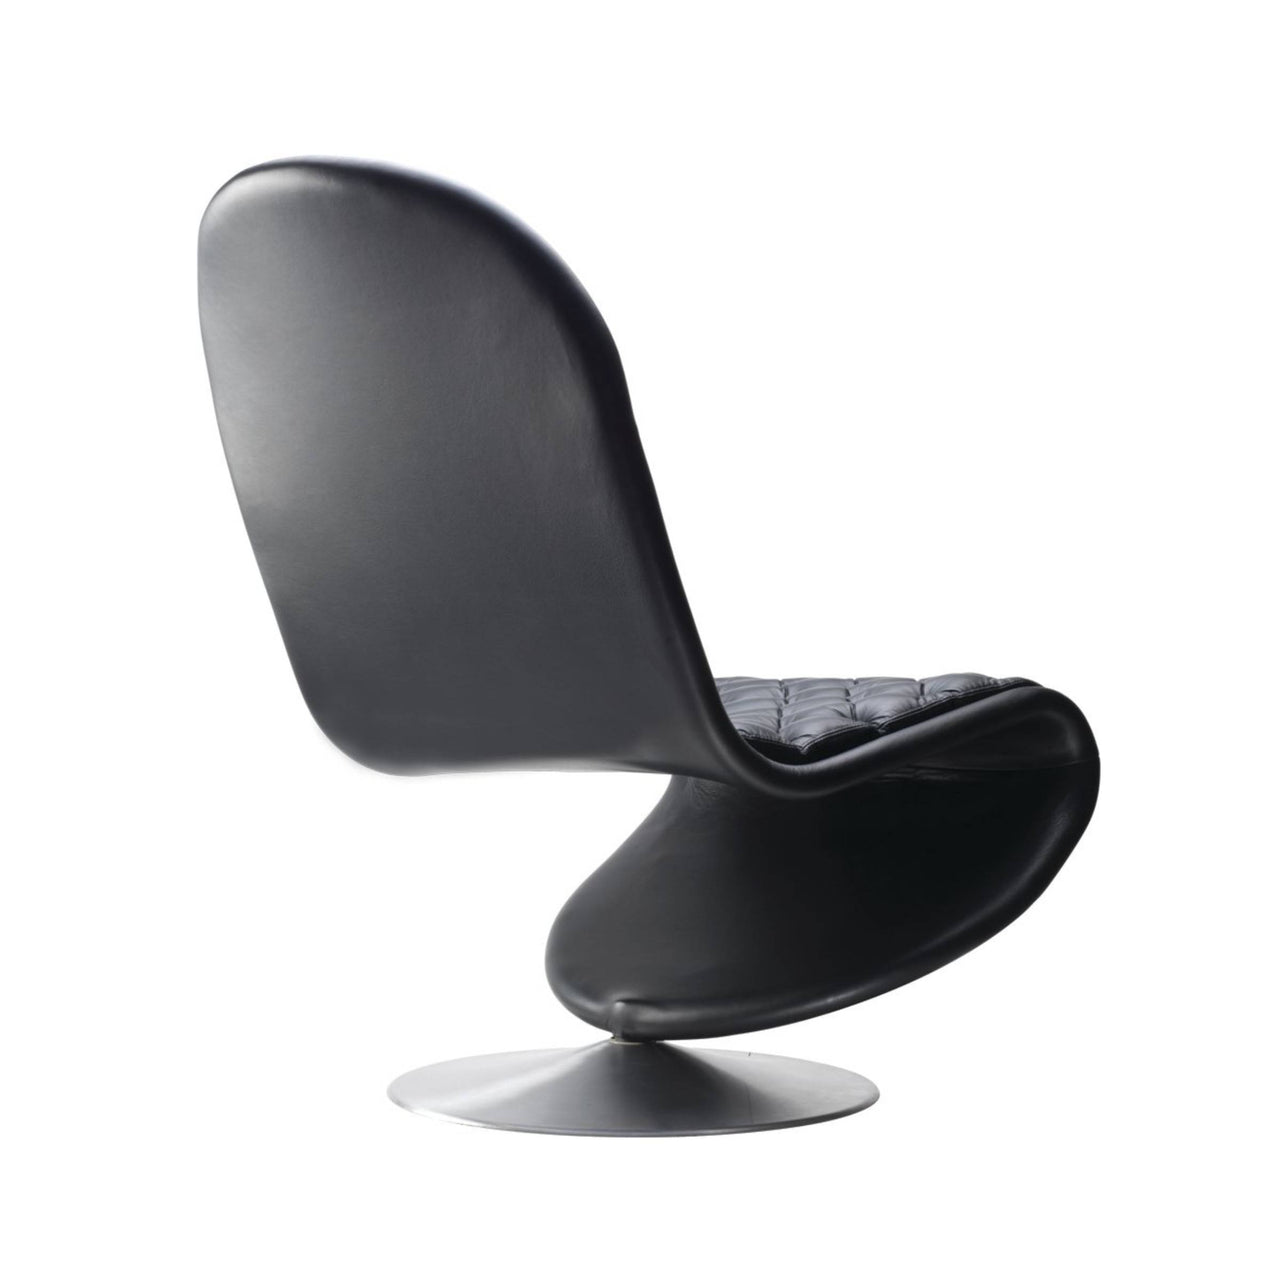 System 1-2-3 Lounge Chair: Deluxe